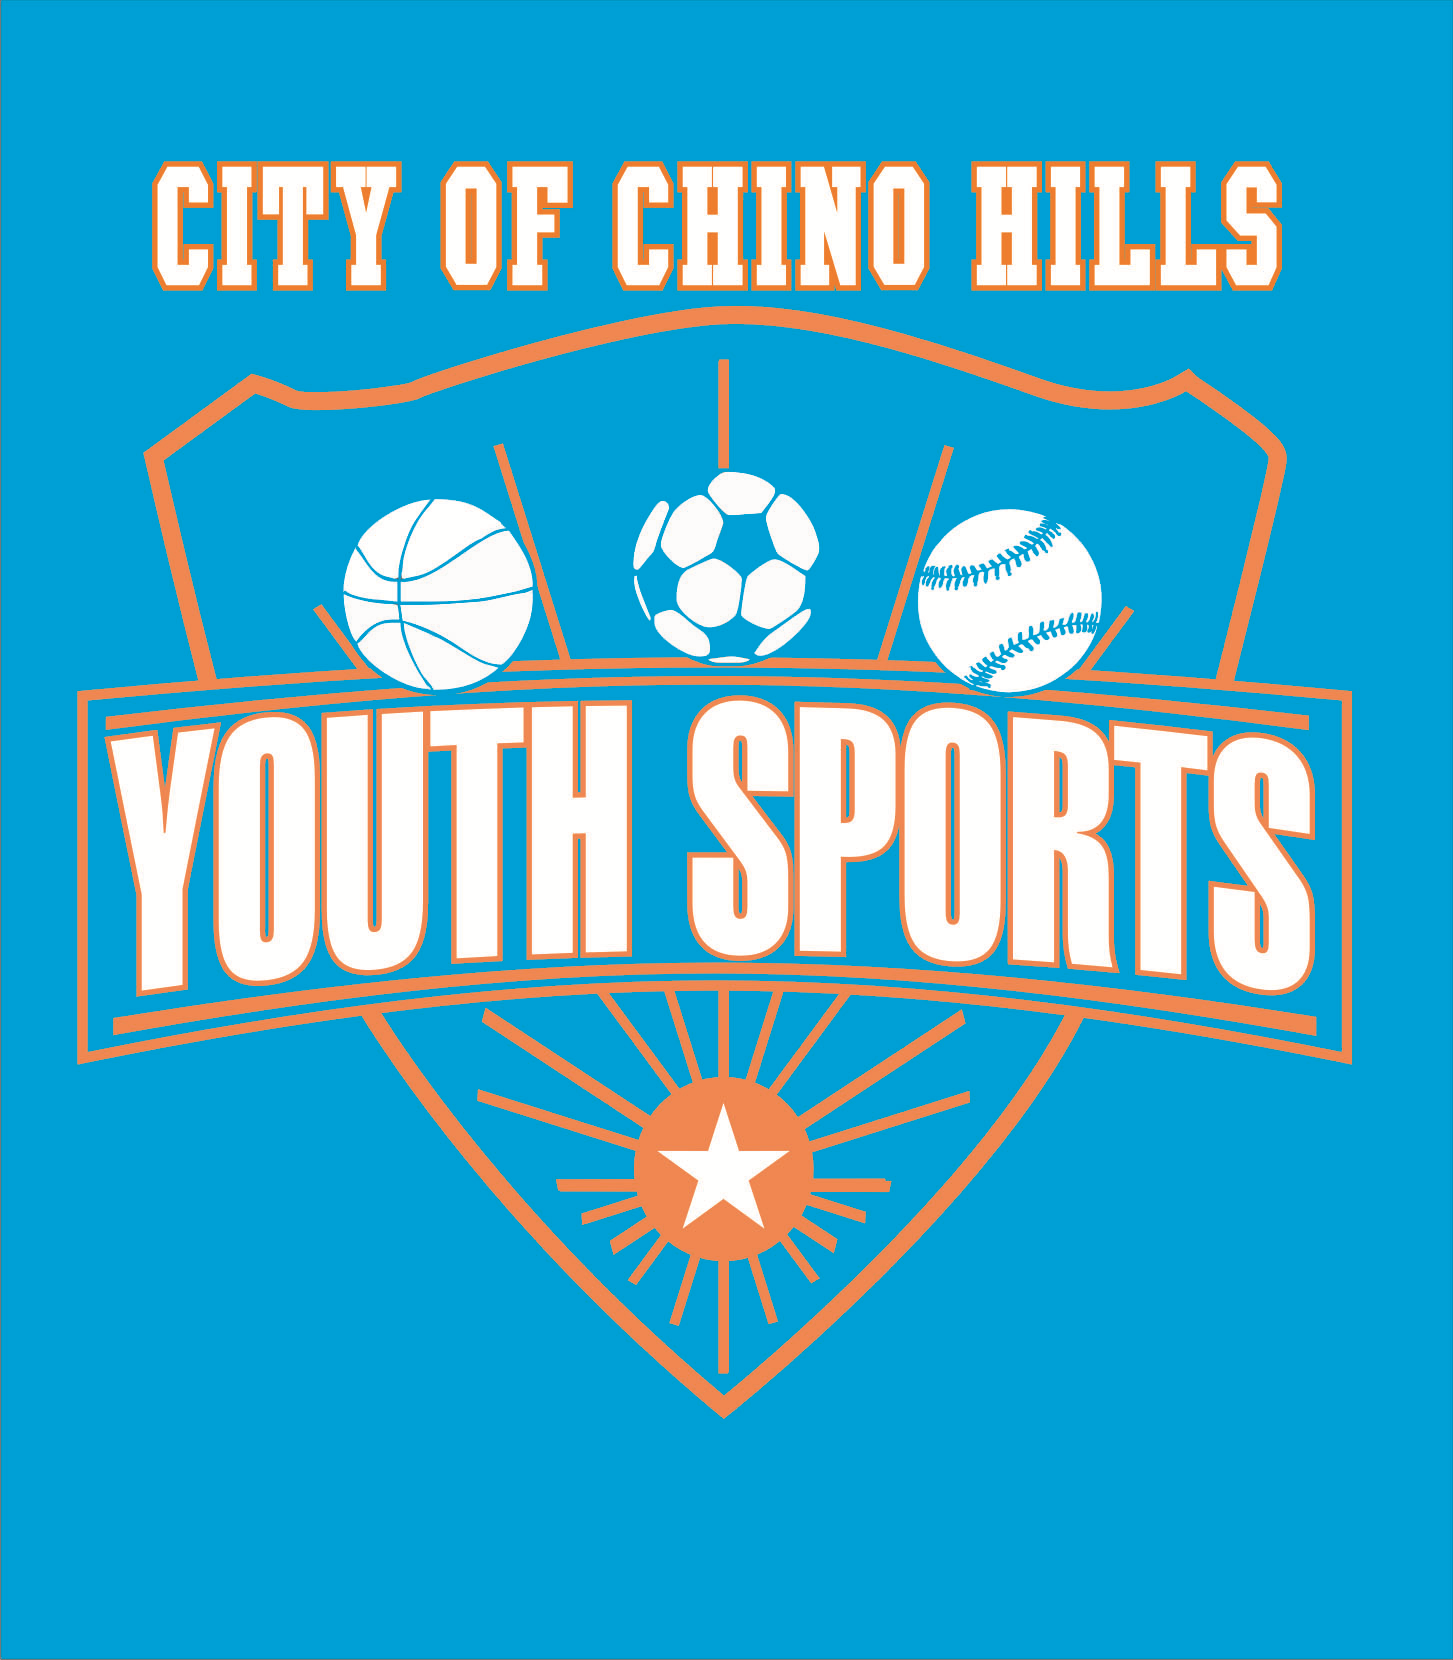 Youth Sports Logo